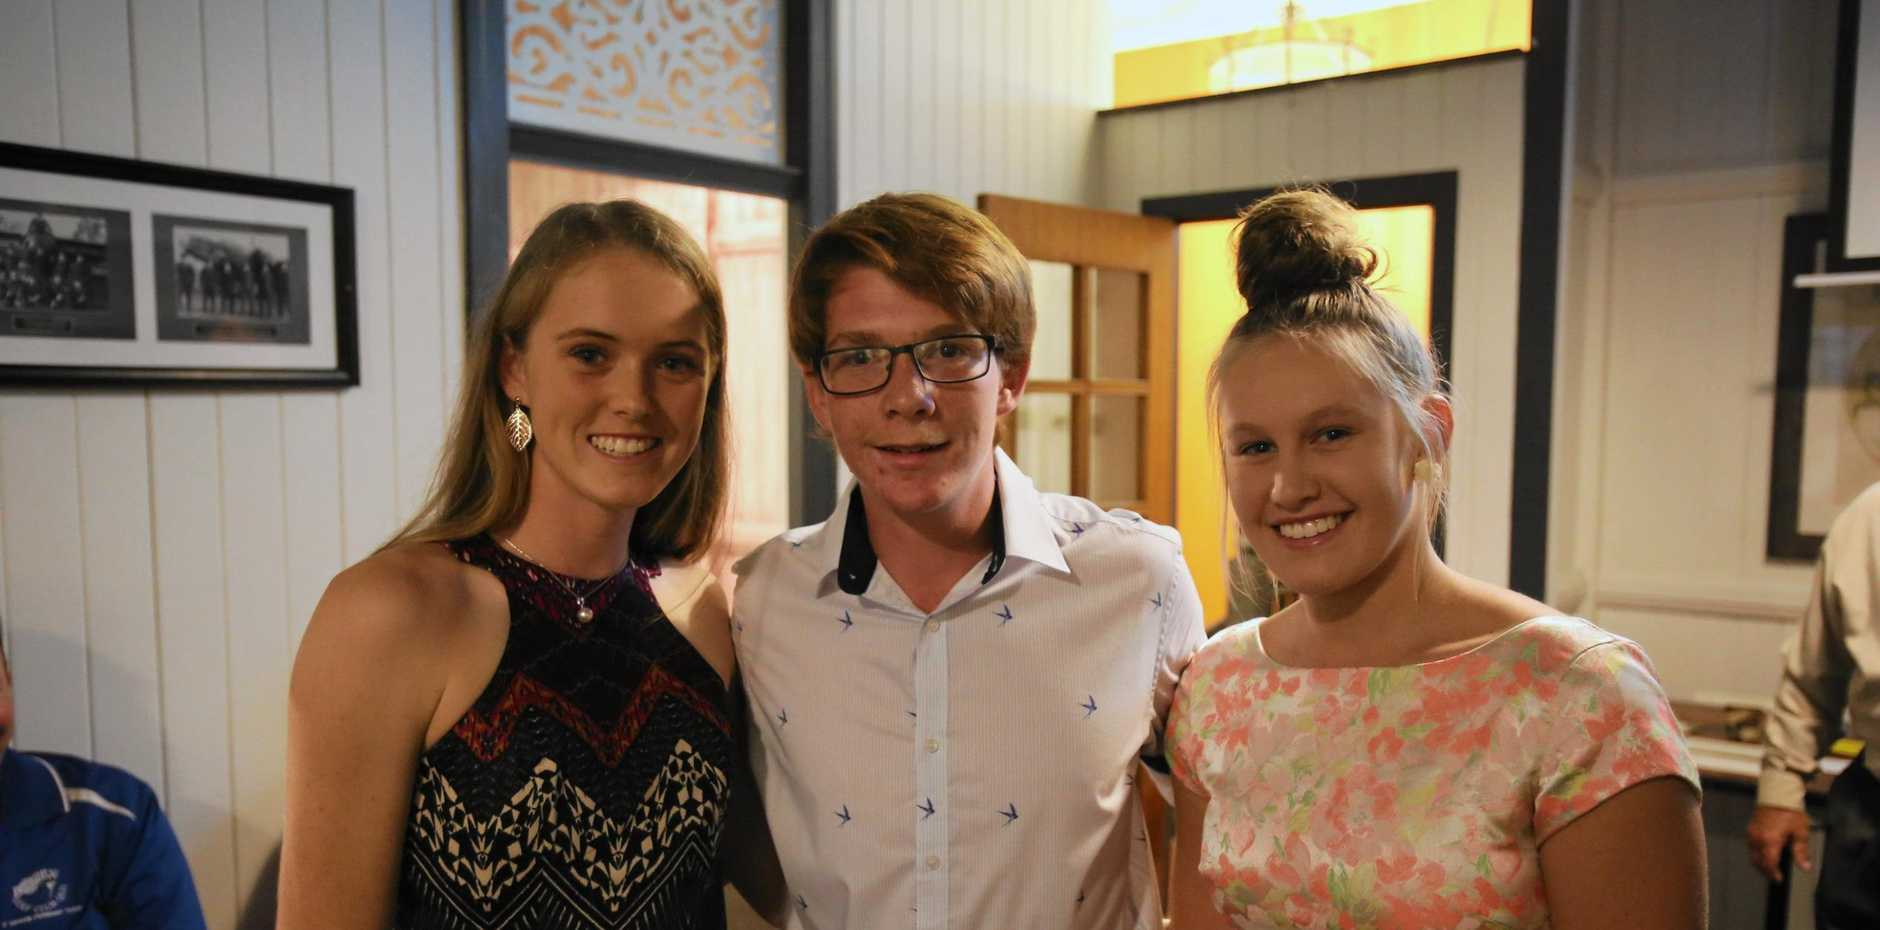 NEXT GENERATION: Rising local sporting stars Elliarna Mitchell, Denver Cross and Eden Hedges were in attendance at the Bowen Sporting Hall of Fame function.